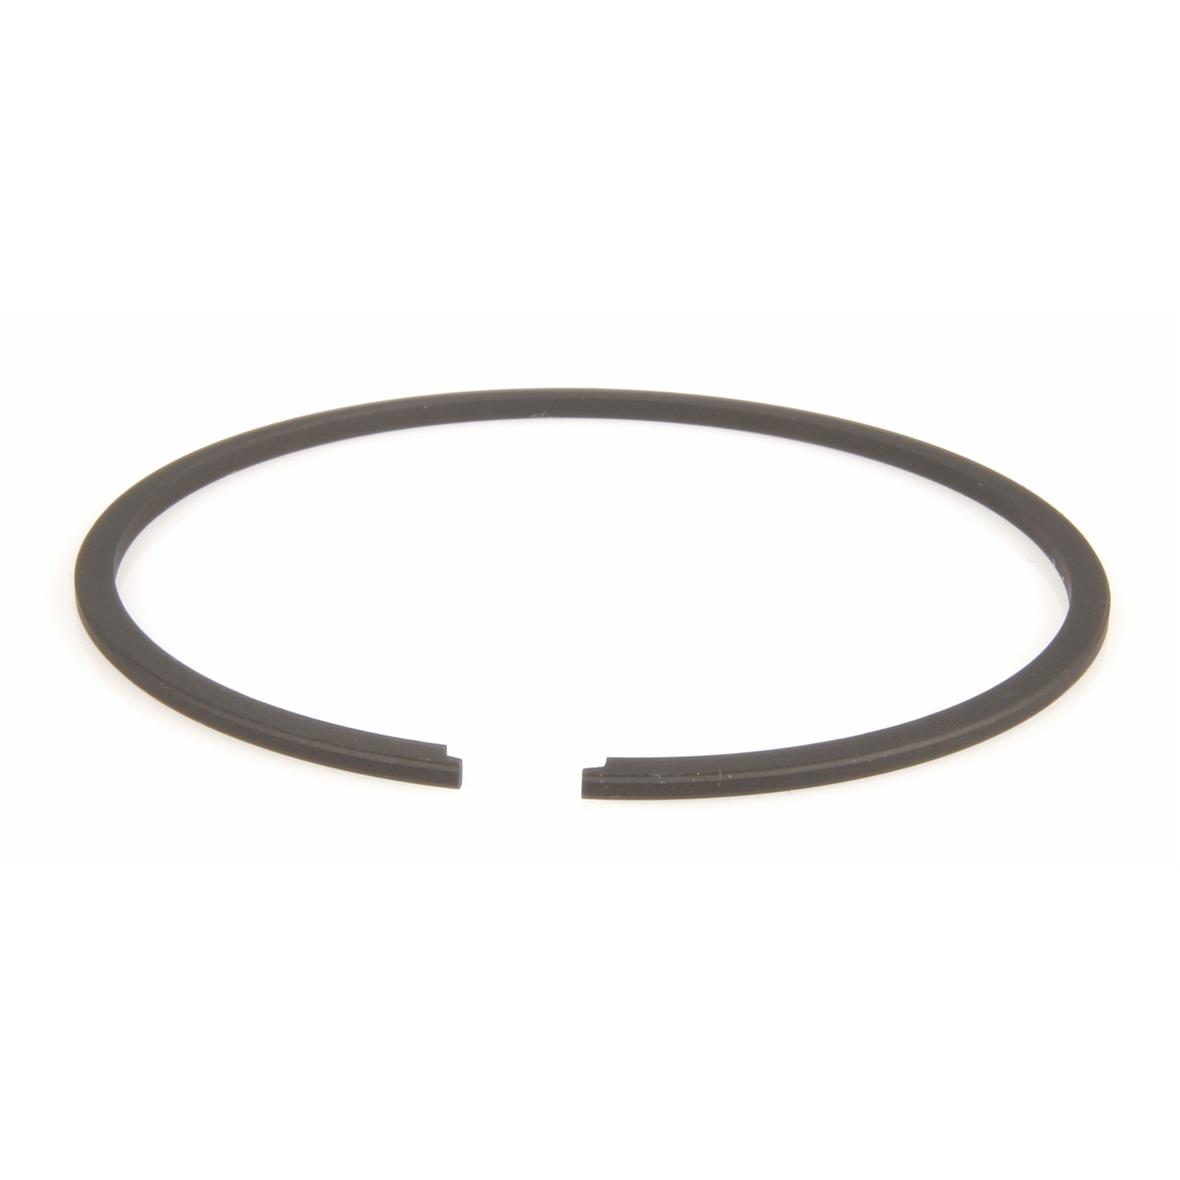 Product Image for 'Piston Ring POLINI 68 ccTitle'